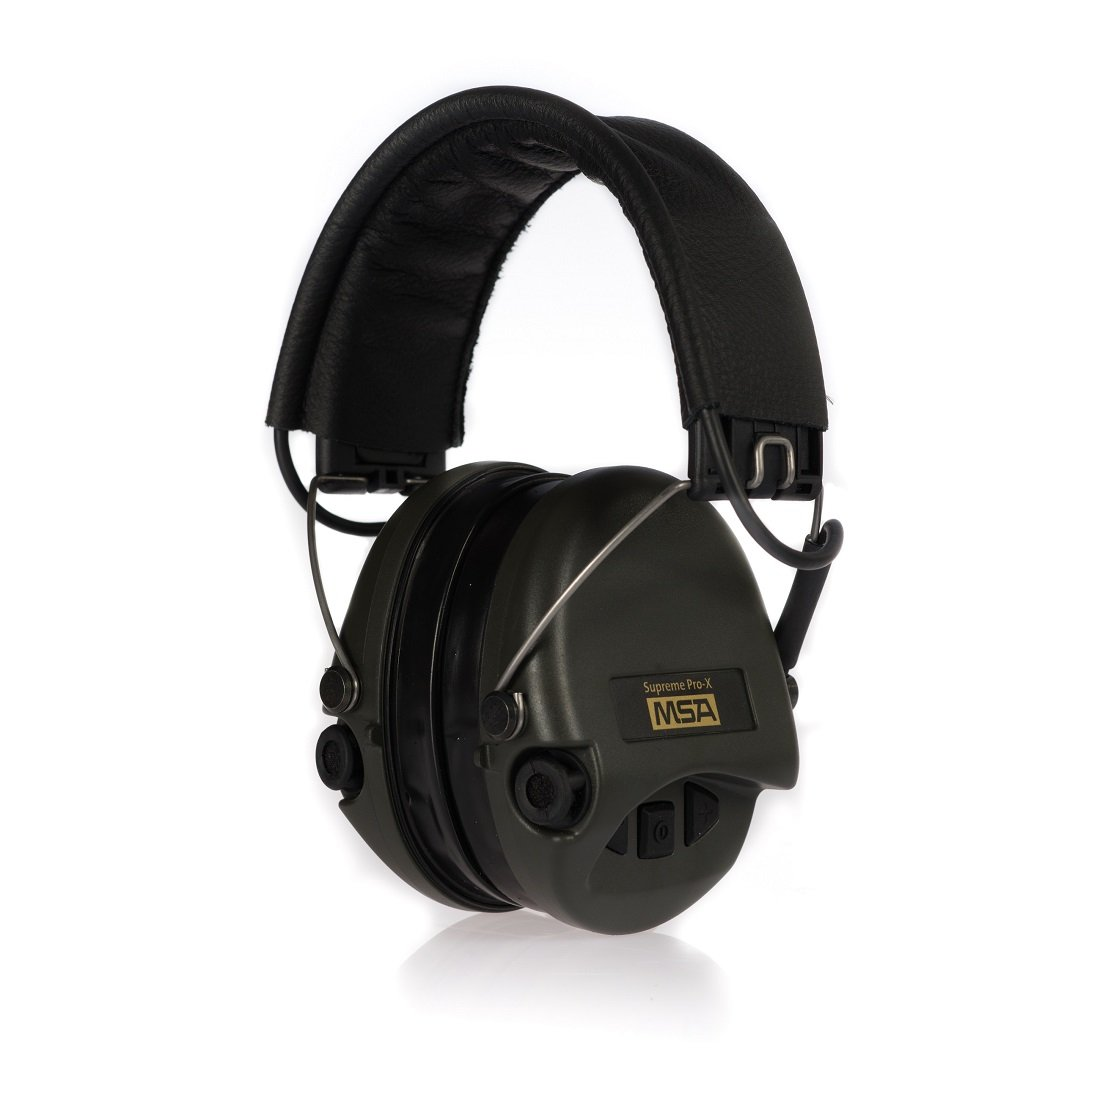 MSA Sordin Supreme Pro X - Premium Edition - Electronic Earmuff with black leather band, green cups and gel seals fitted by MSA Sordin B00QV4OCDA